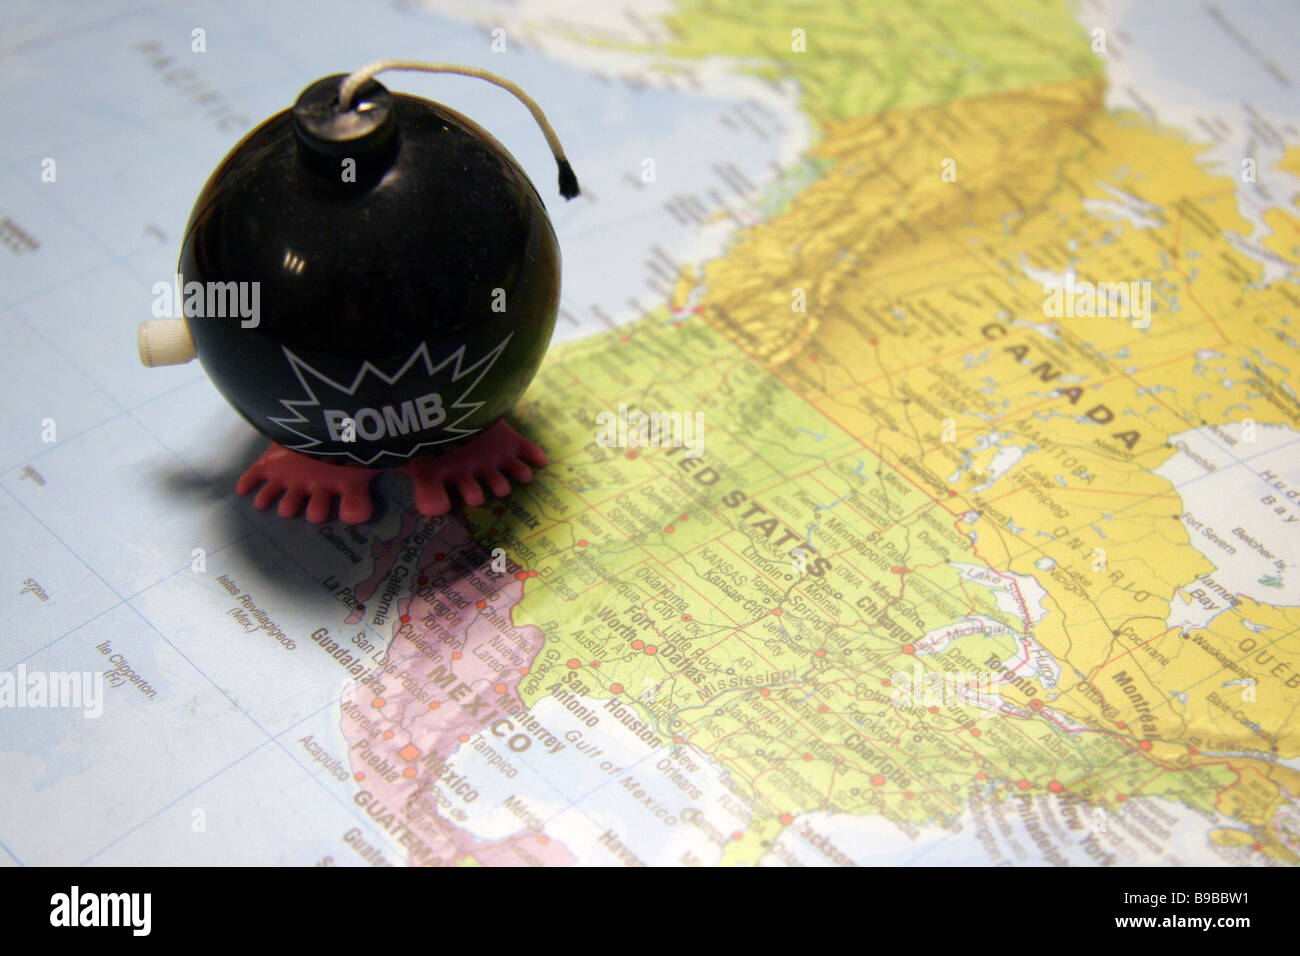 Toy bomb on map of North America - Stock Image